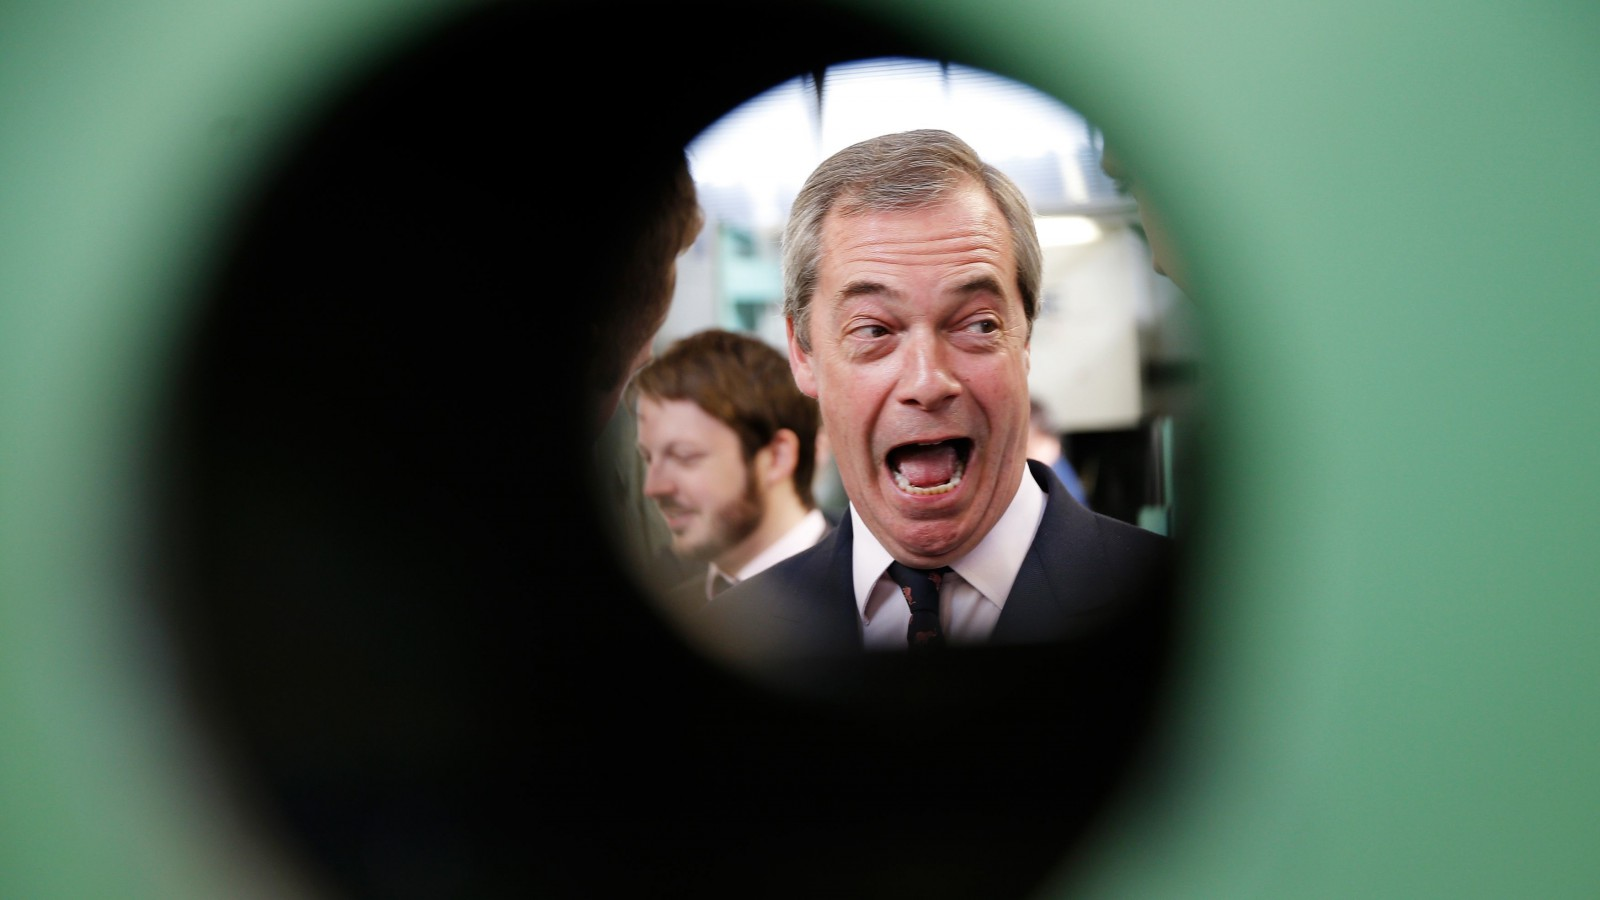 Nigel Farage, the leader of the United Kingdom Independence Party, laughs during a visit to a factory in Clacton, Essex, April 13, 2015.  REUTERS/Peter Nicholls TPX IMAGES OF THE DAY  - RTR4X422